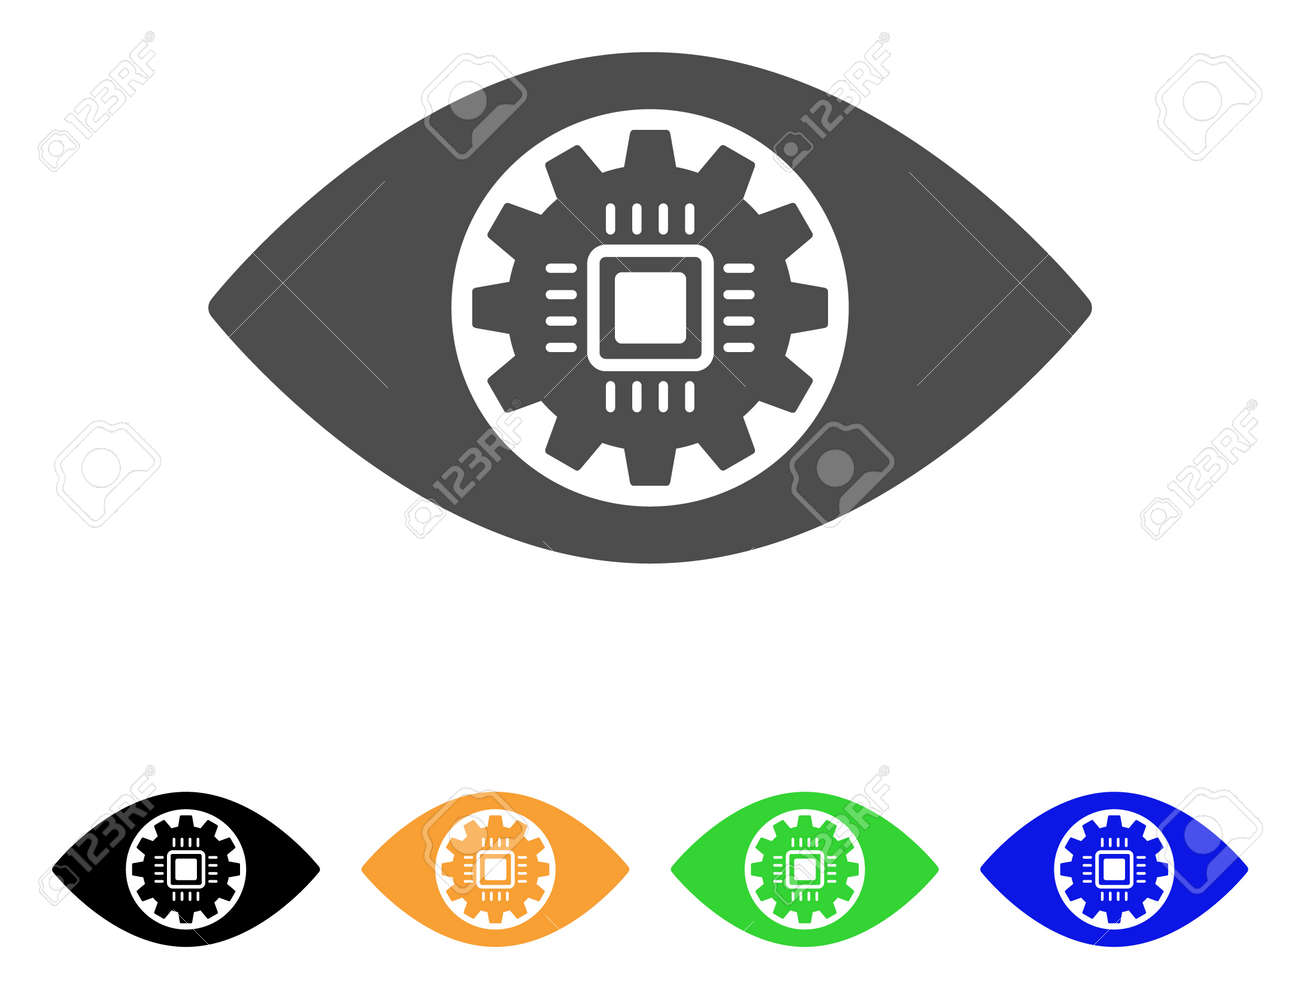 Robotics Eye Lens Vector Pictograph Style Is A Flat Graphic